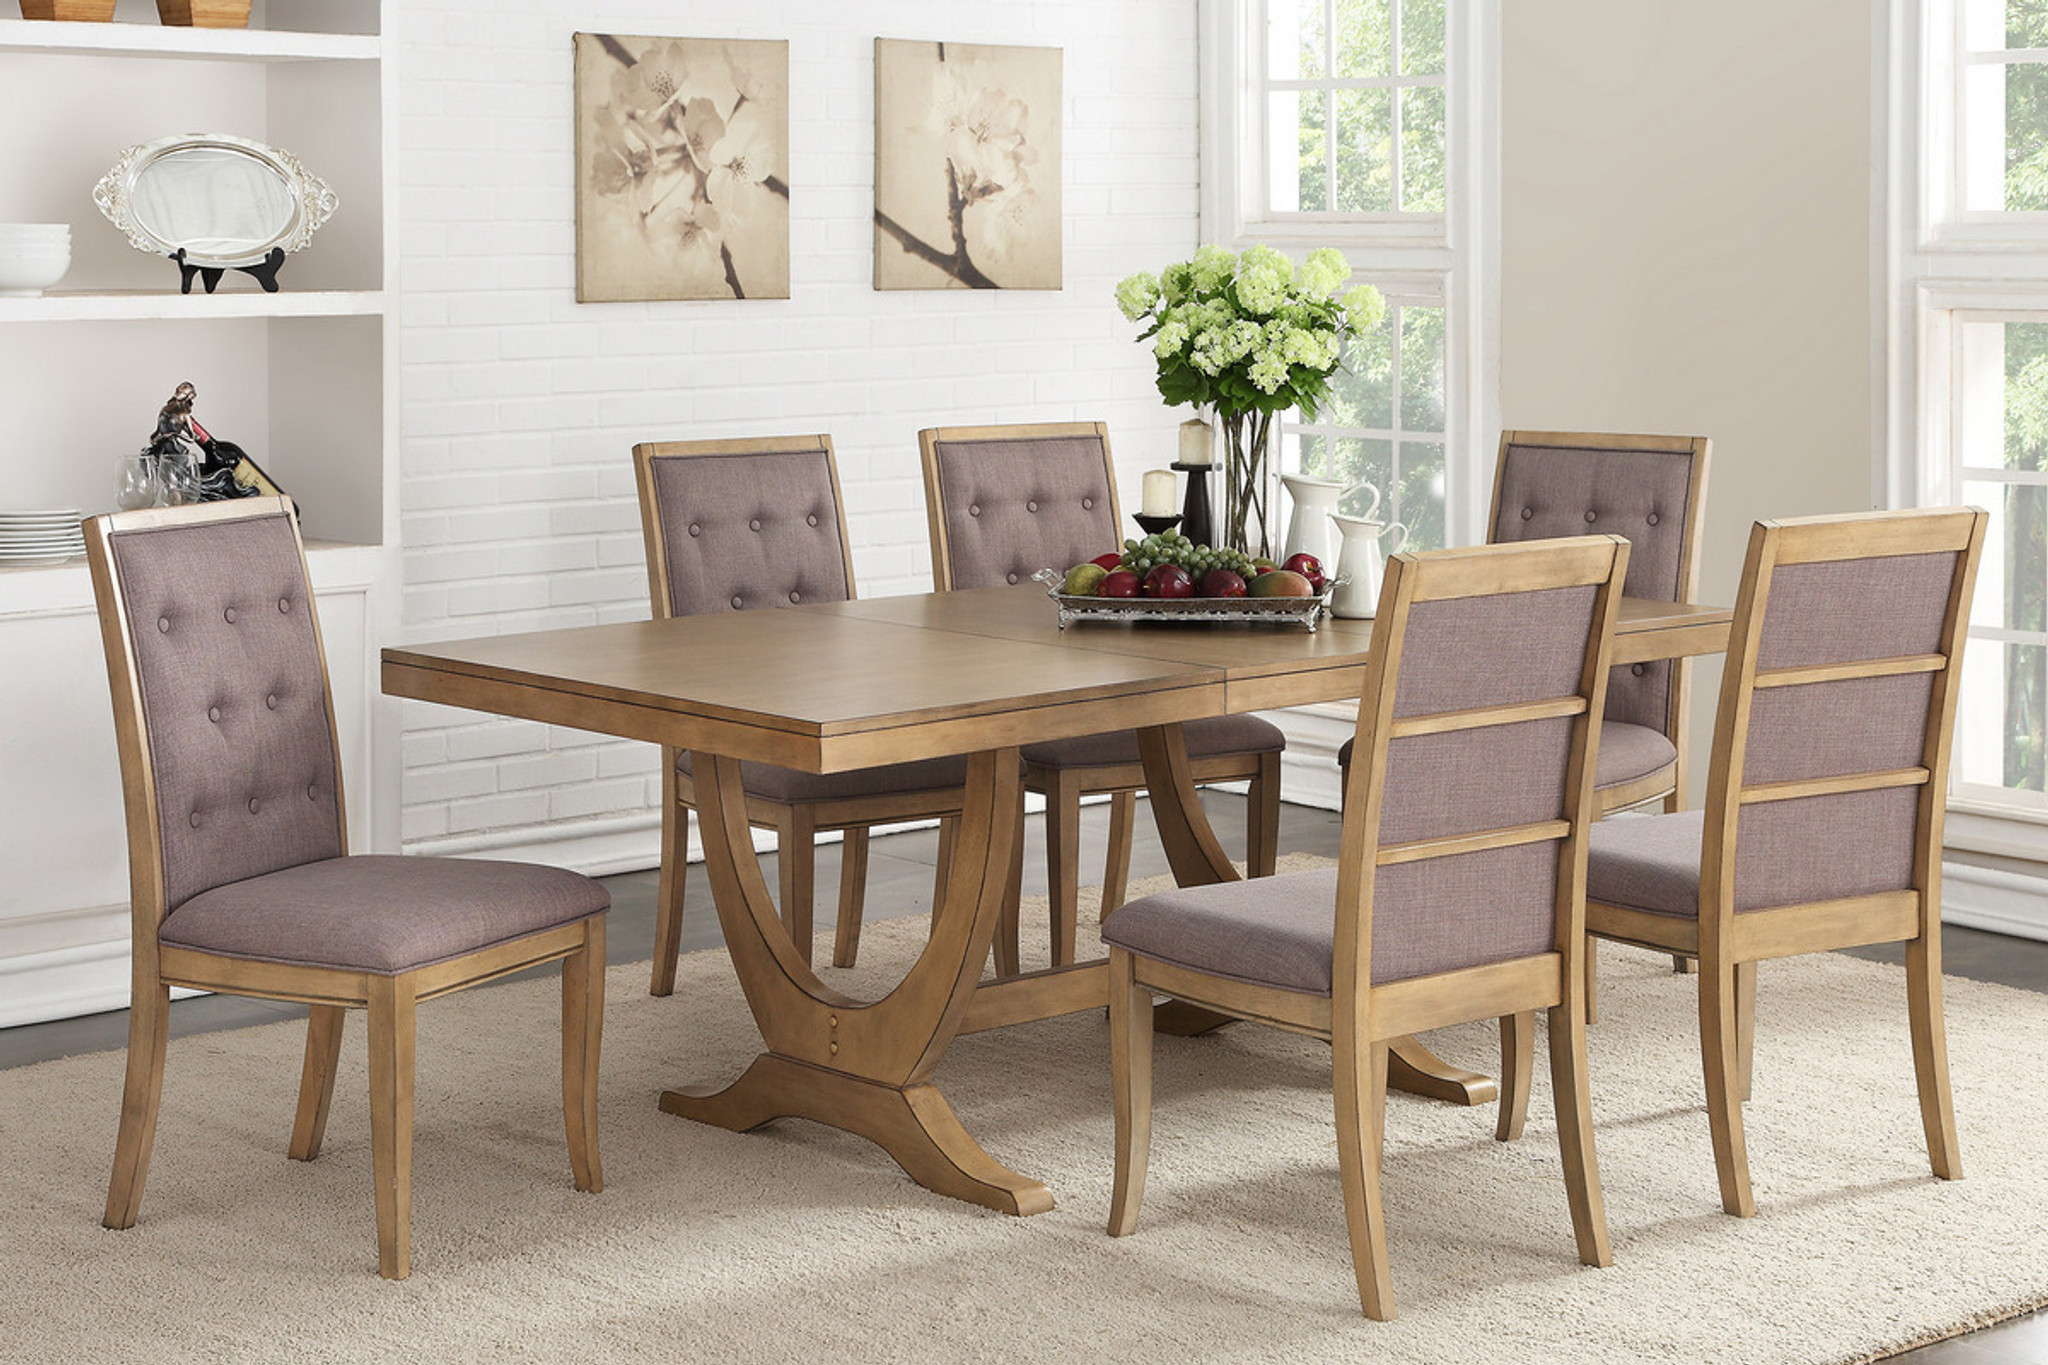 Exceptionnel 7PCS NATURAL WOOD DINING TABLE SET F2449 F1725